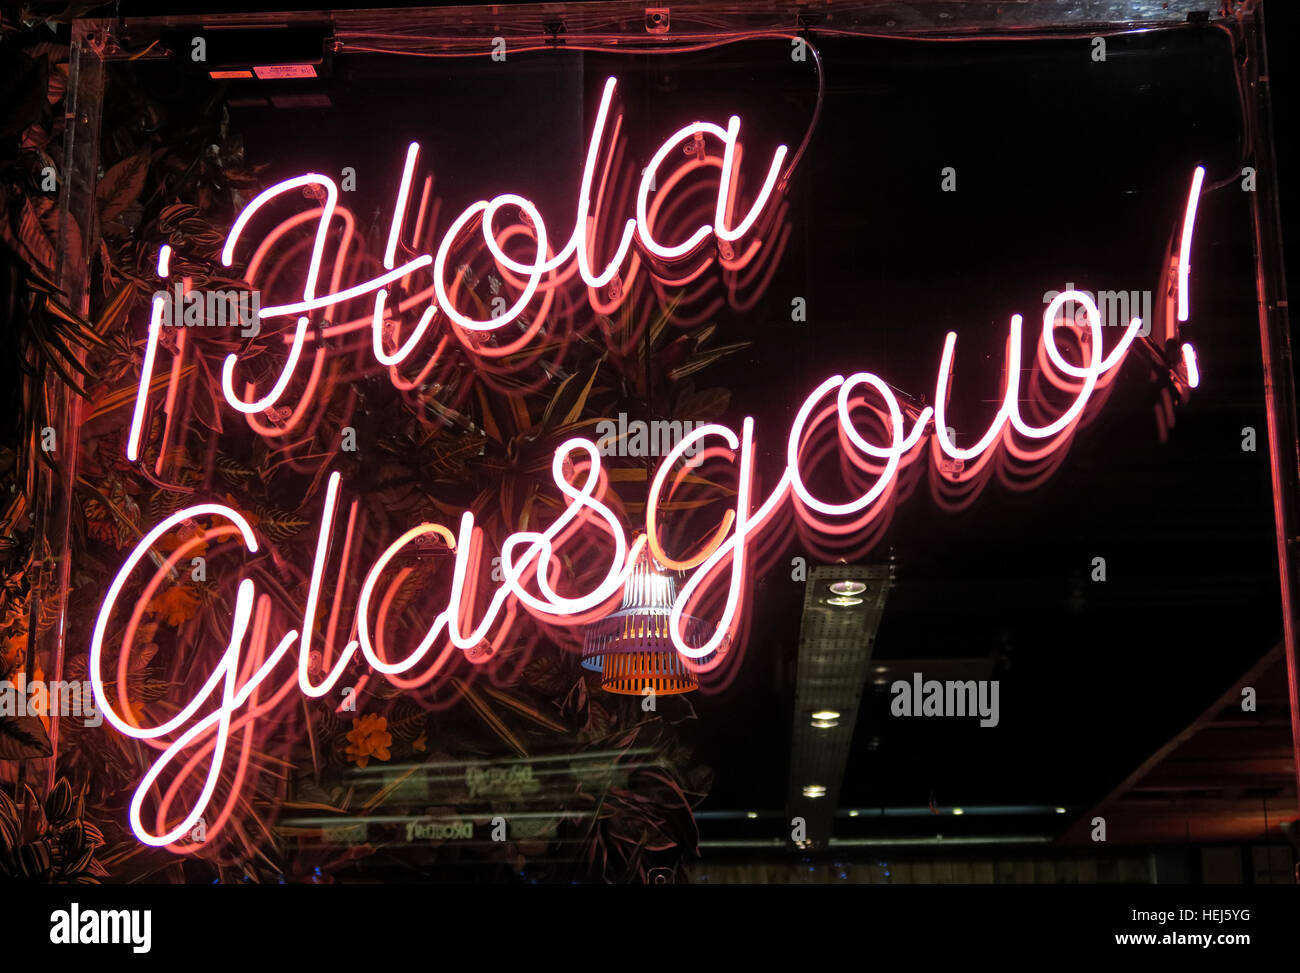 Hola Glasgow red neon sign, city Centre,Scotland,UK - Stock Image